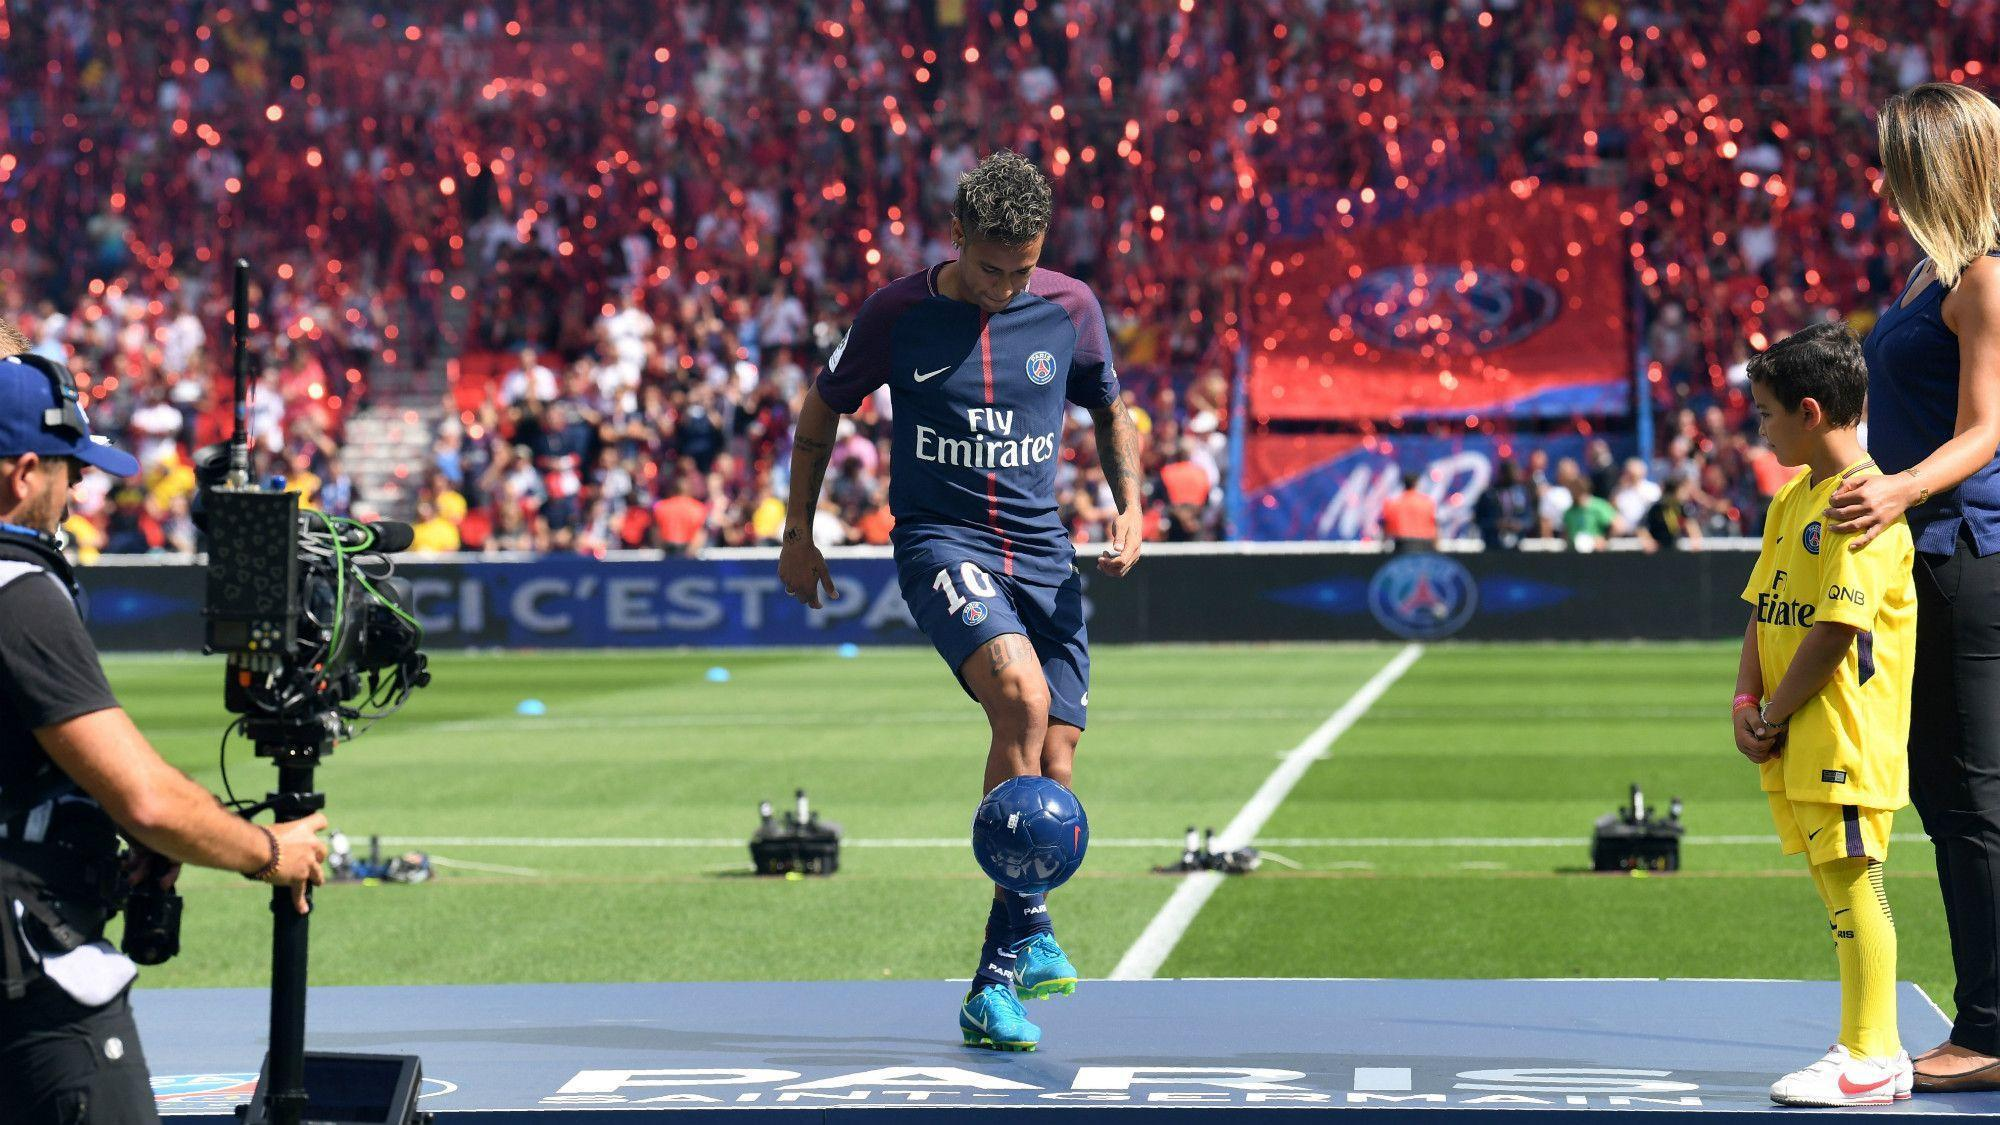 Ligue 1: Neymar proves to be PSG's man to watch - even in the ...